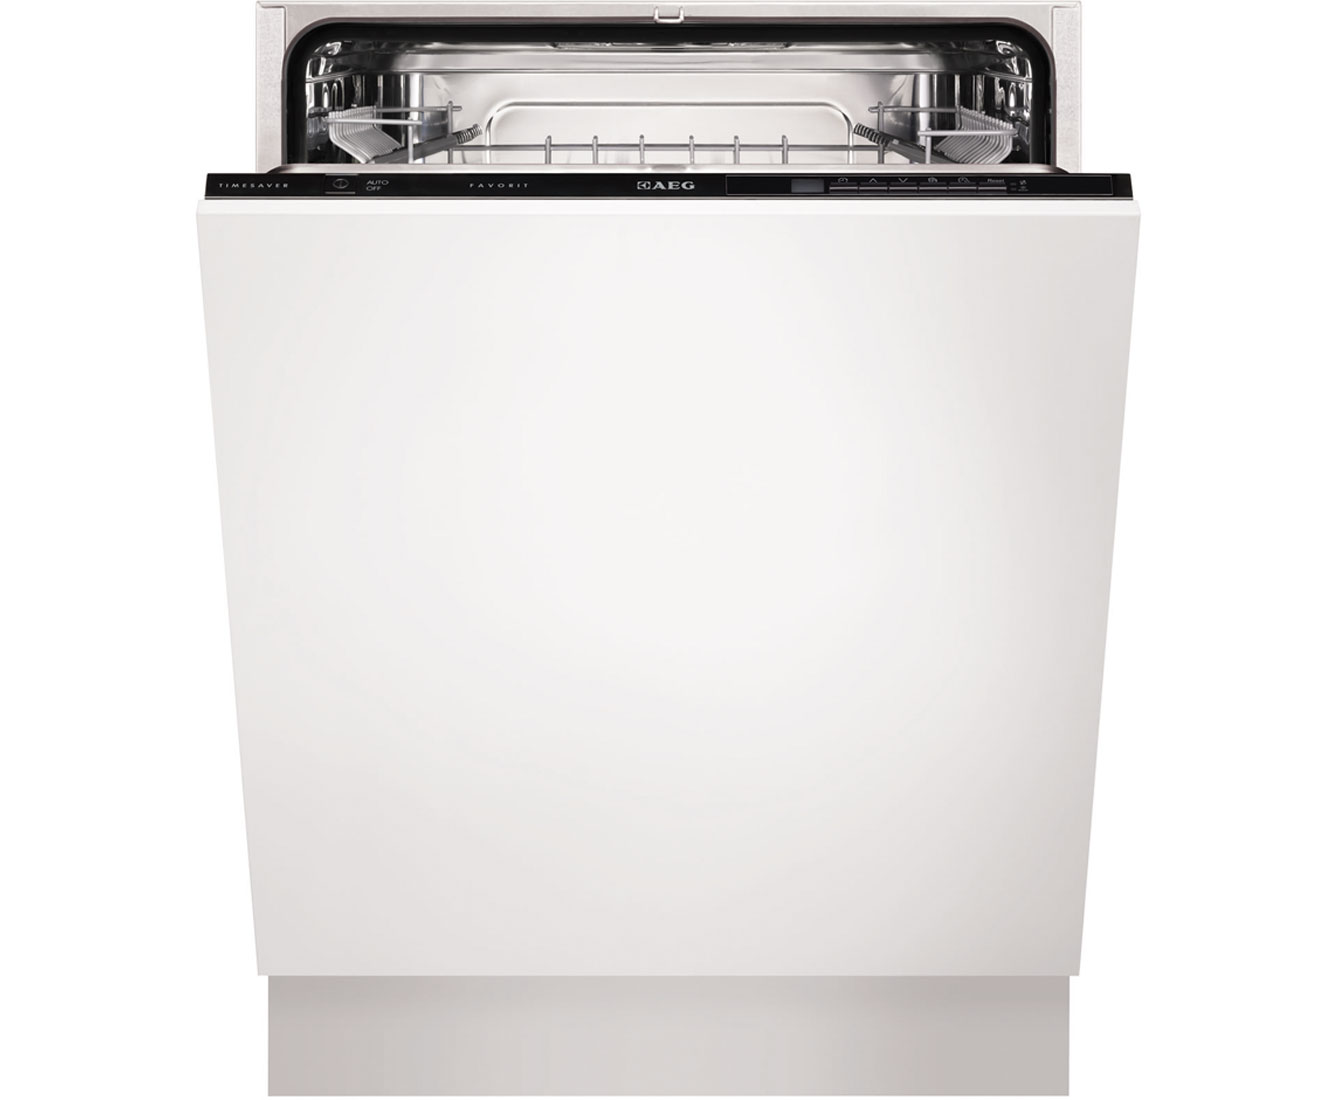 AEG Favorit F55320VI0 Fully Integrated Standard Dishwasher - Black